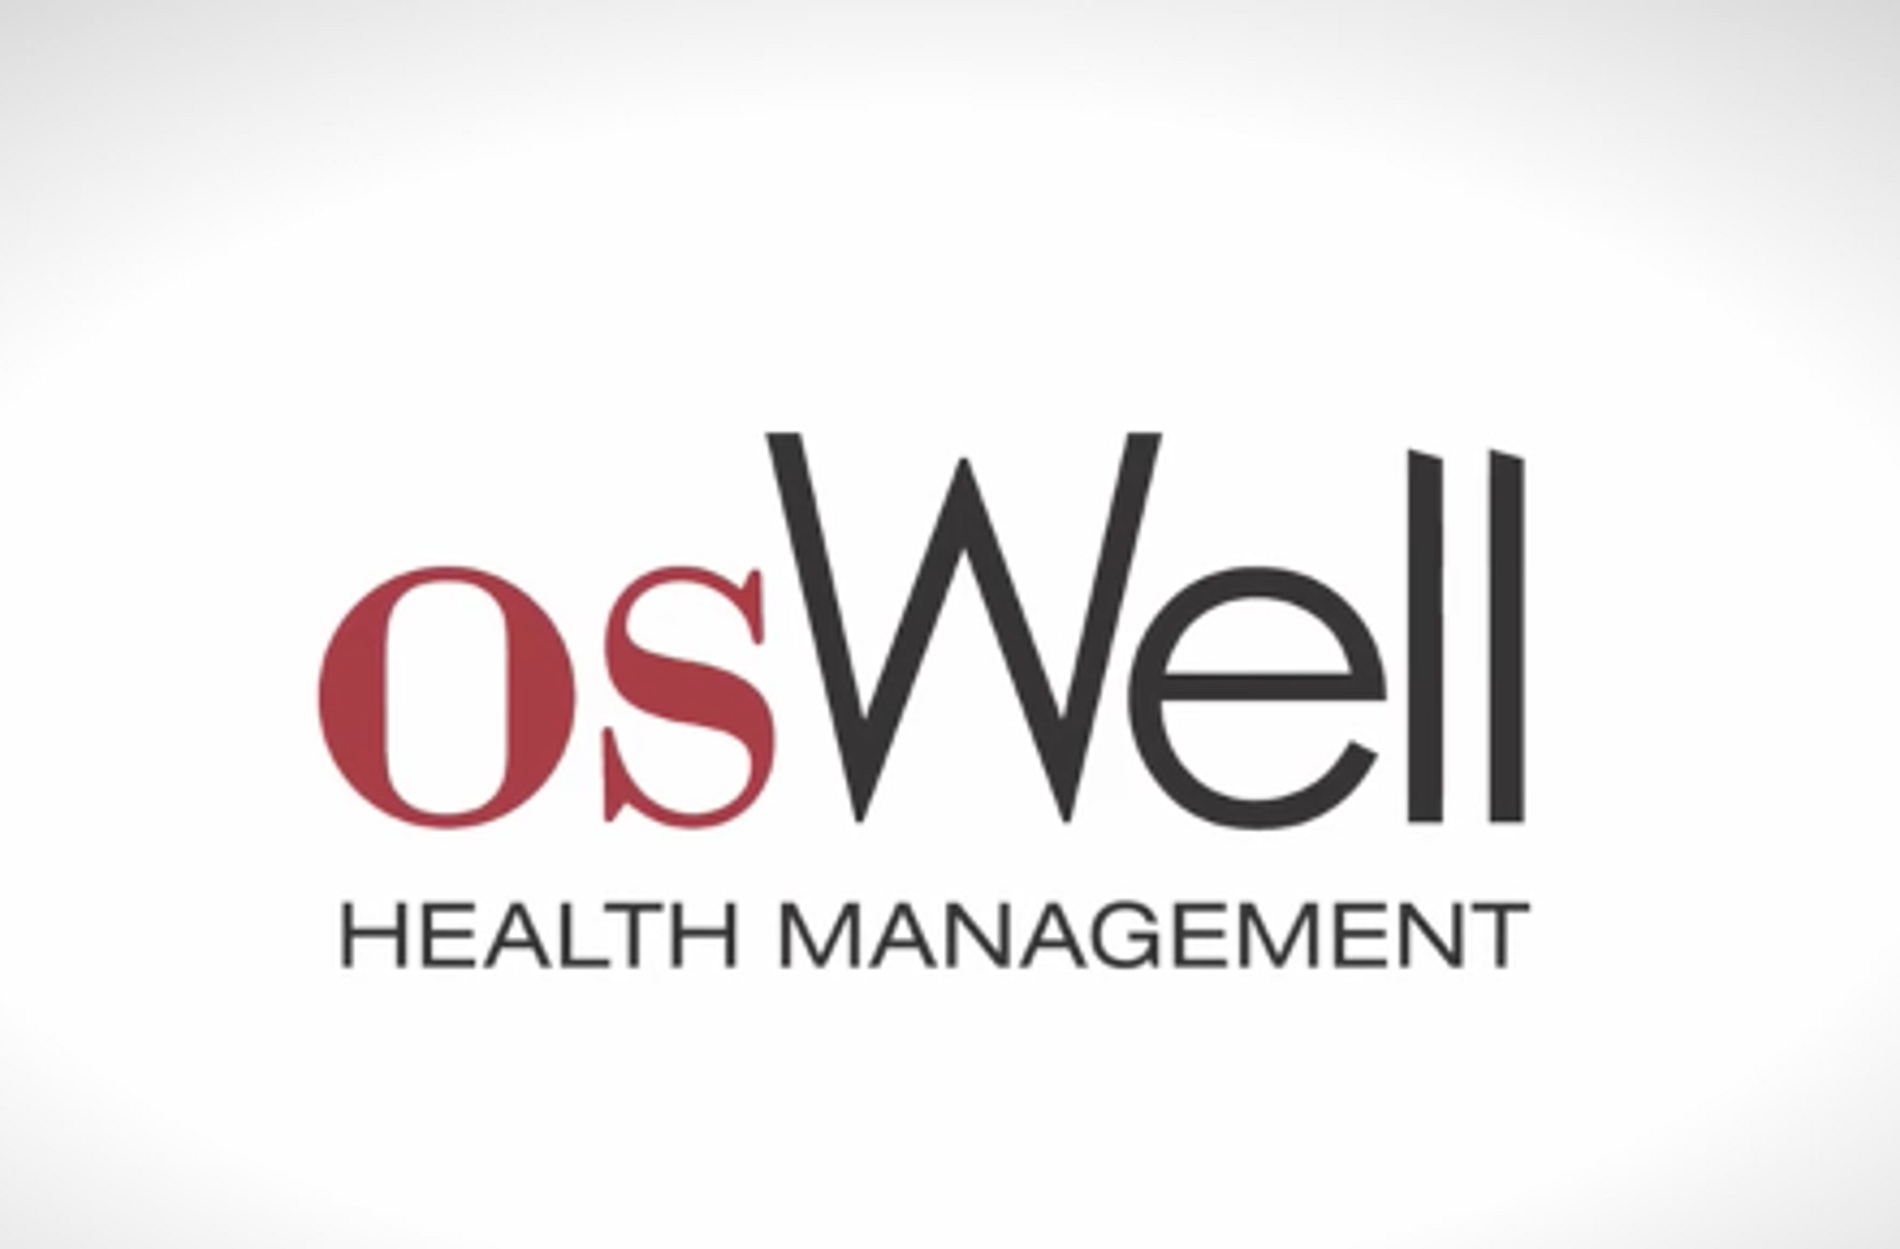 Oswell Health Management Logo